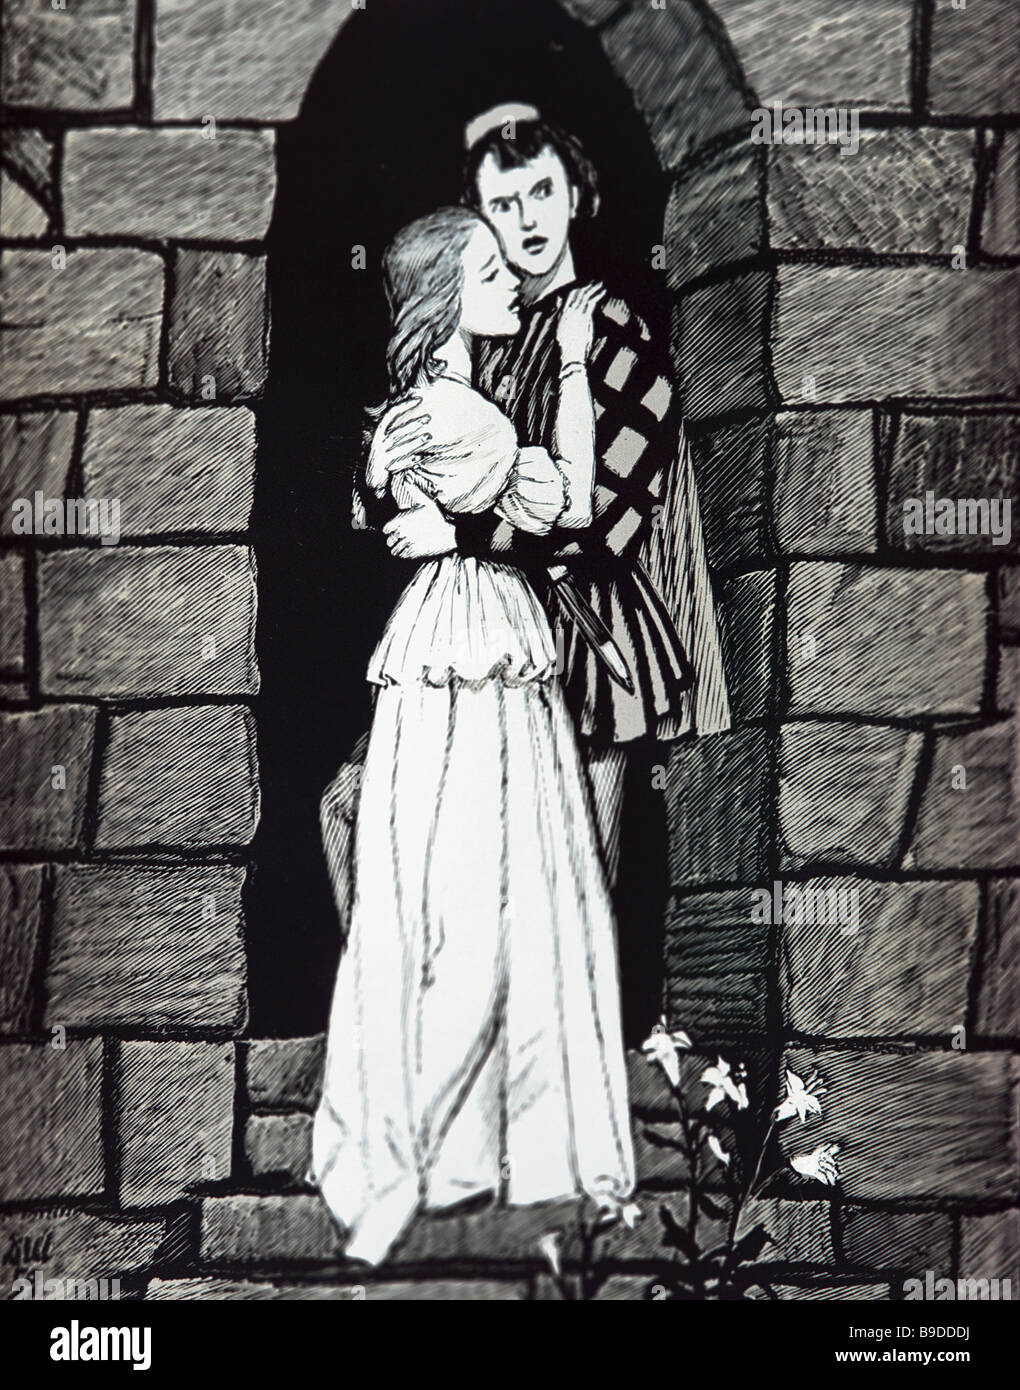 An illustration by Dementy Shmarinov 1907 1999 to William Shakespeare s tragedy Romeo and Juliet - Stock Image